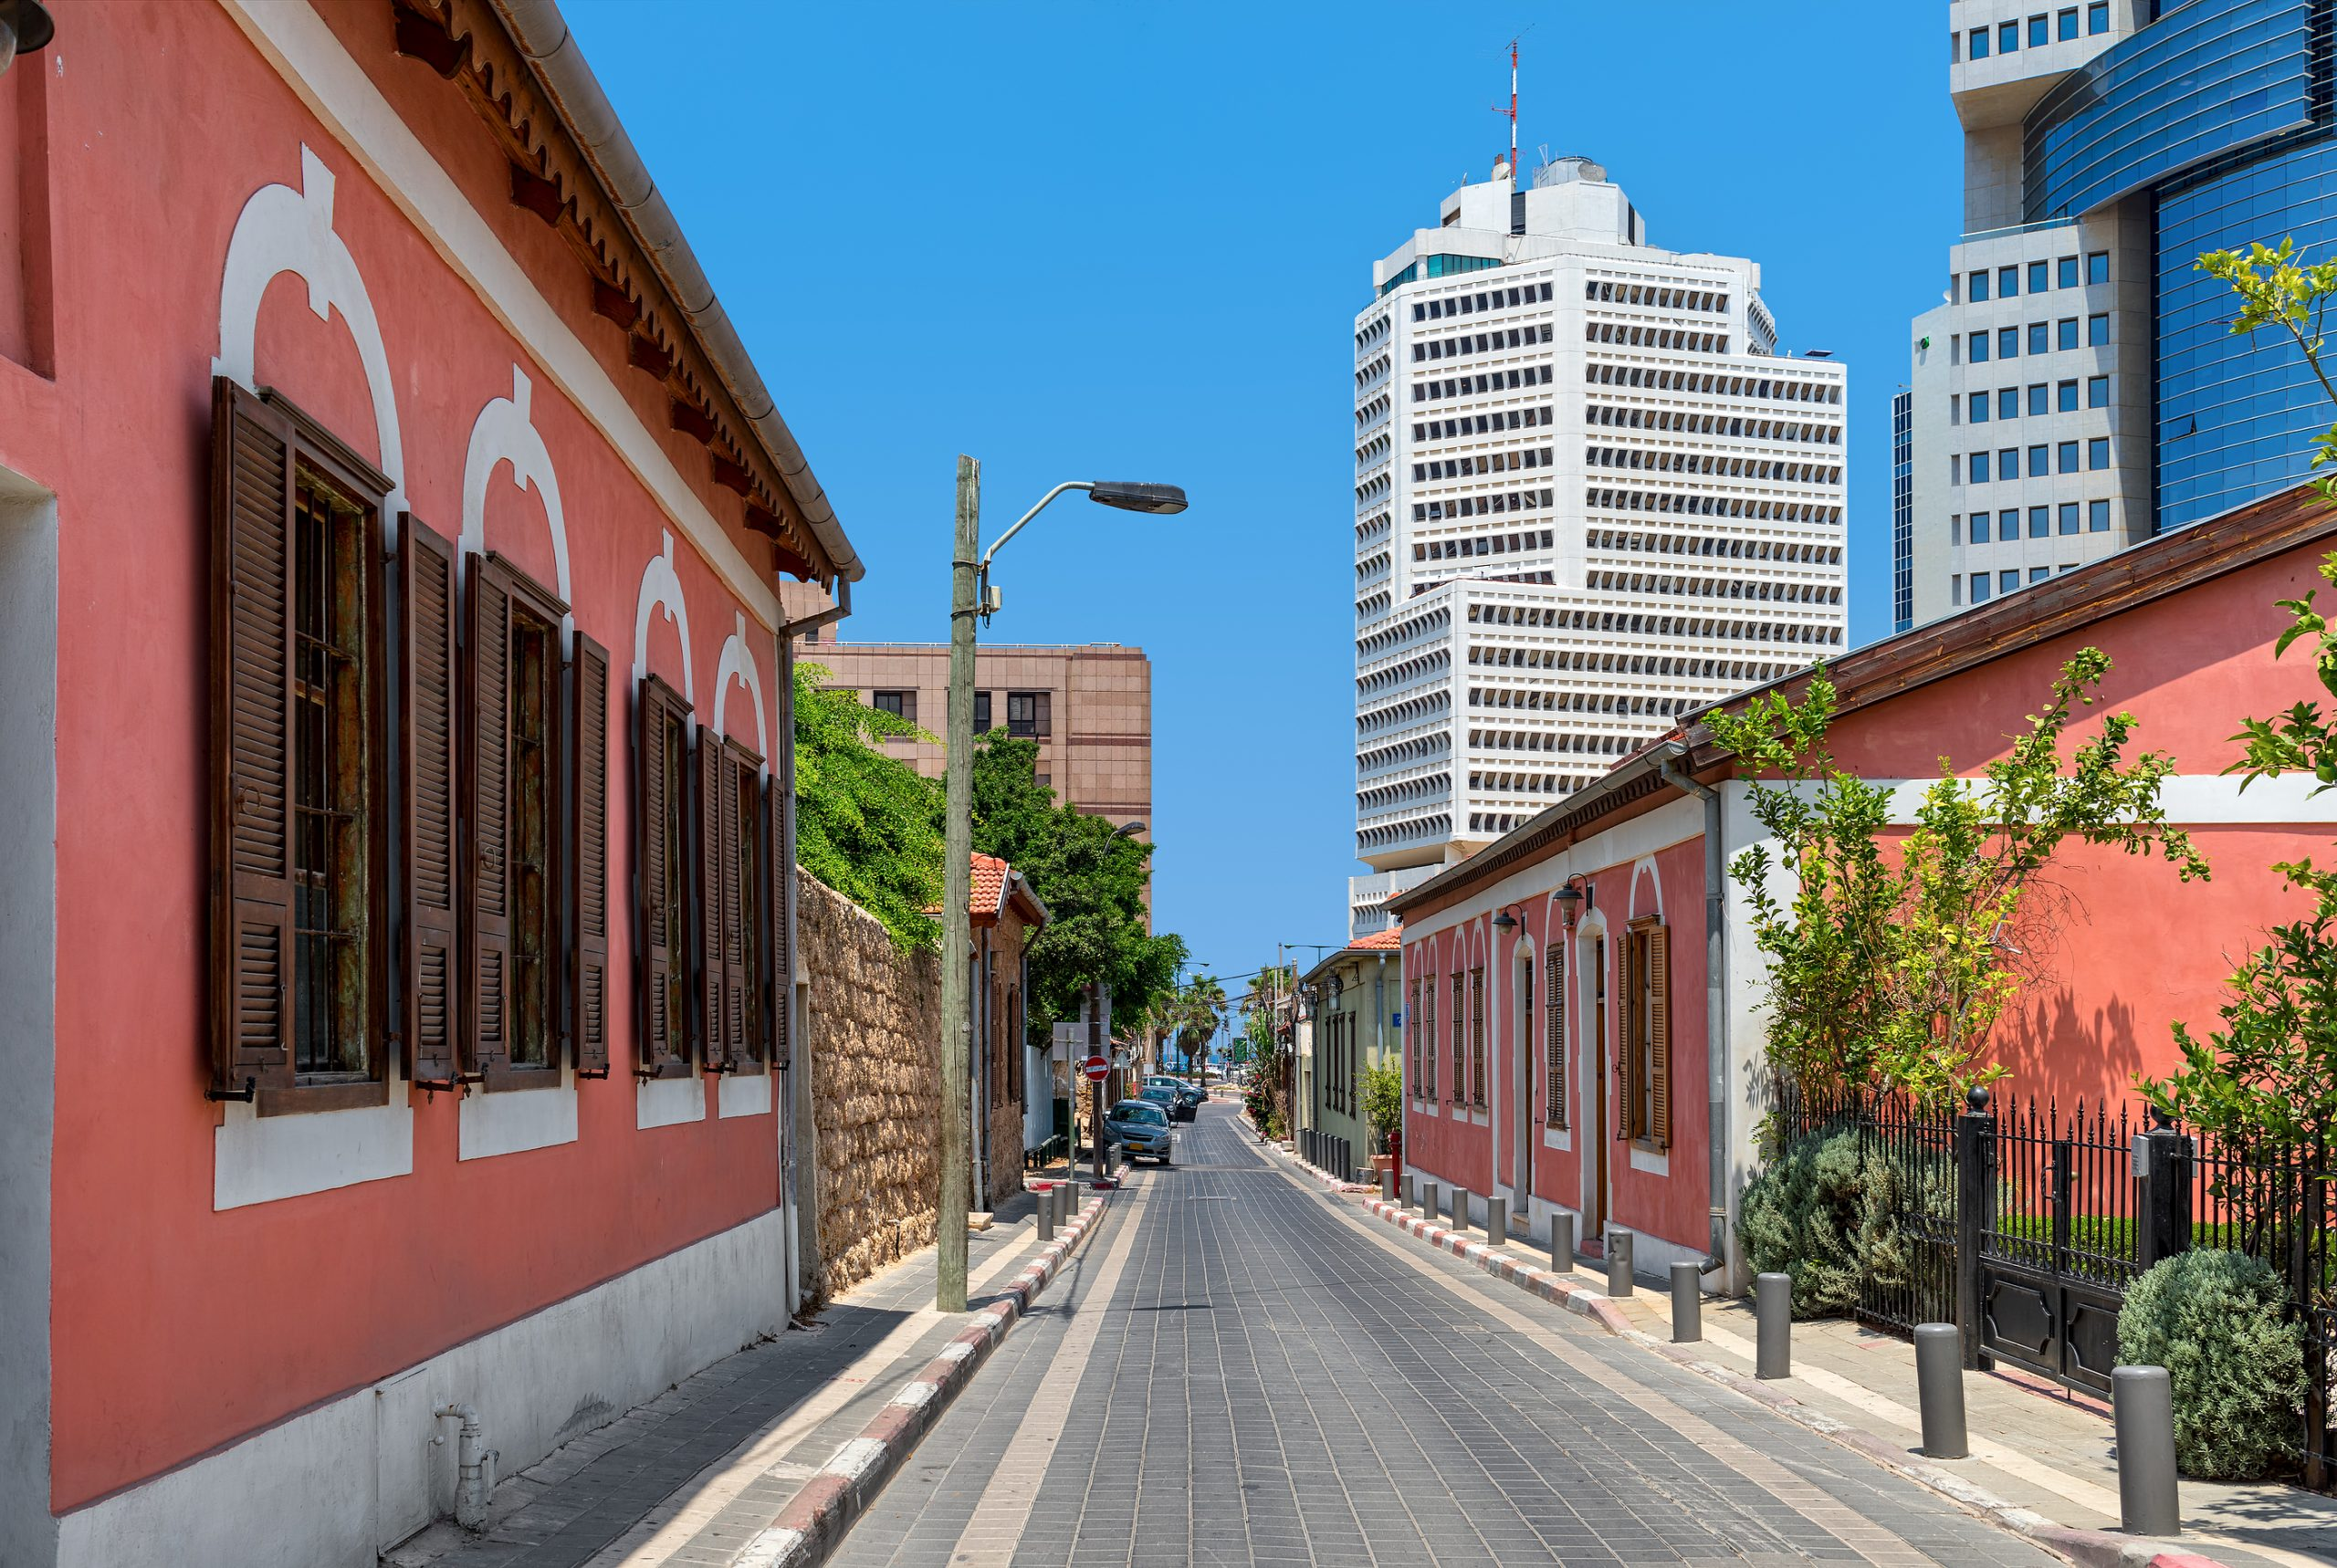 Old and colorful houses of Neve Tzedek - one of the best tel aviv activities, tel aviv to do, tel aviv street